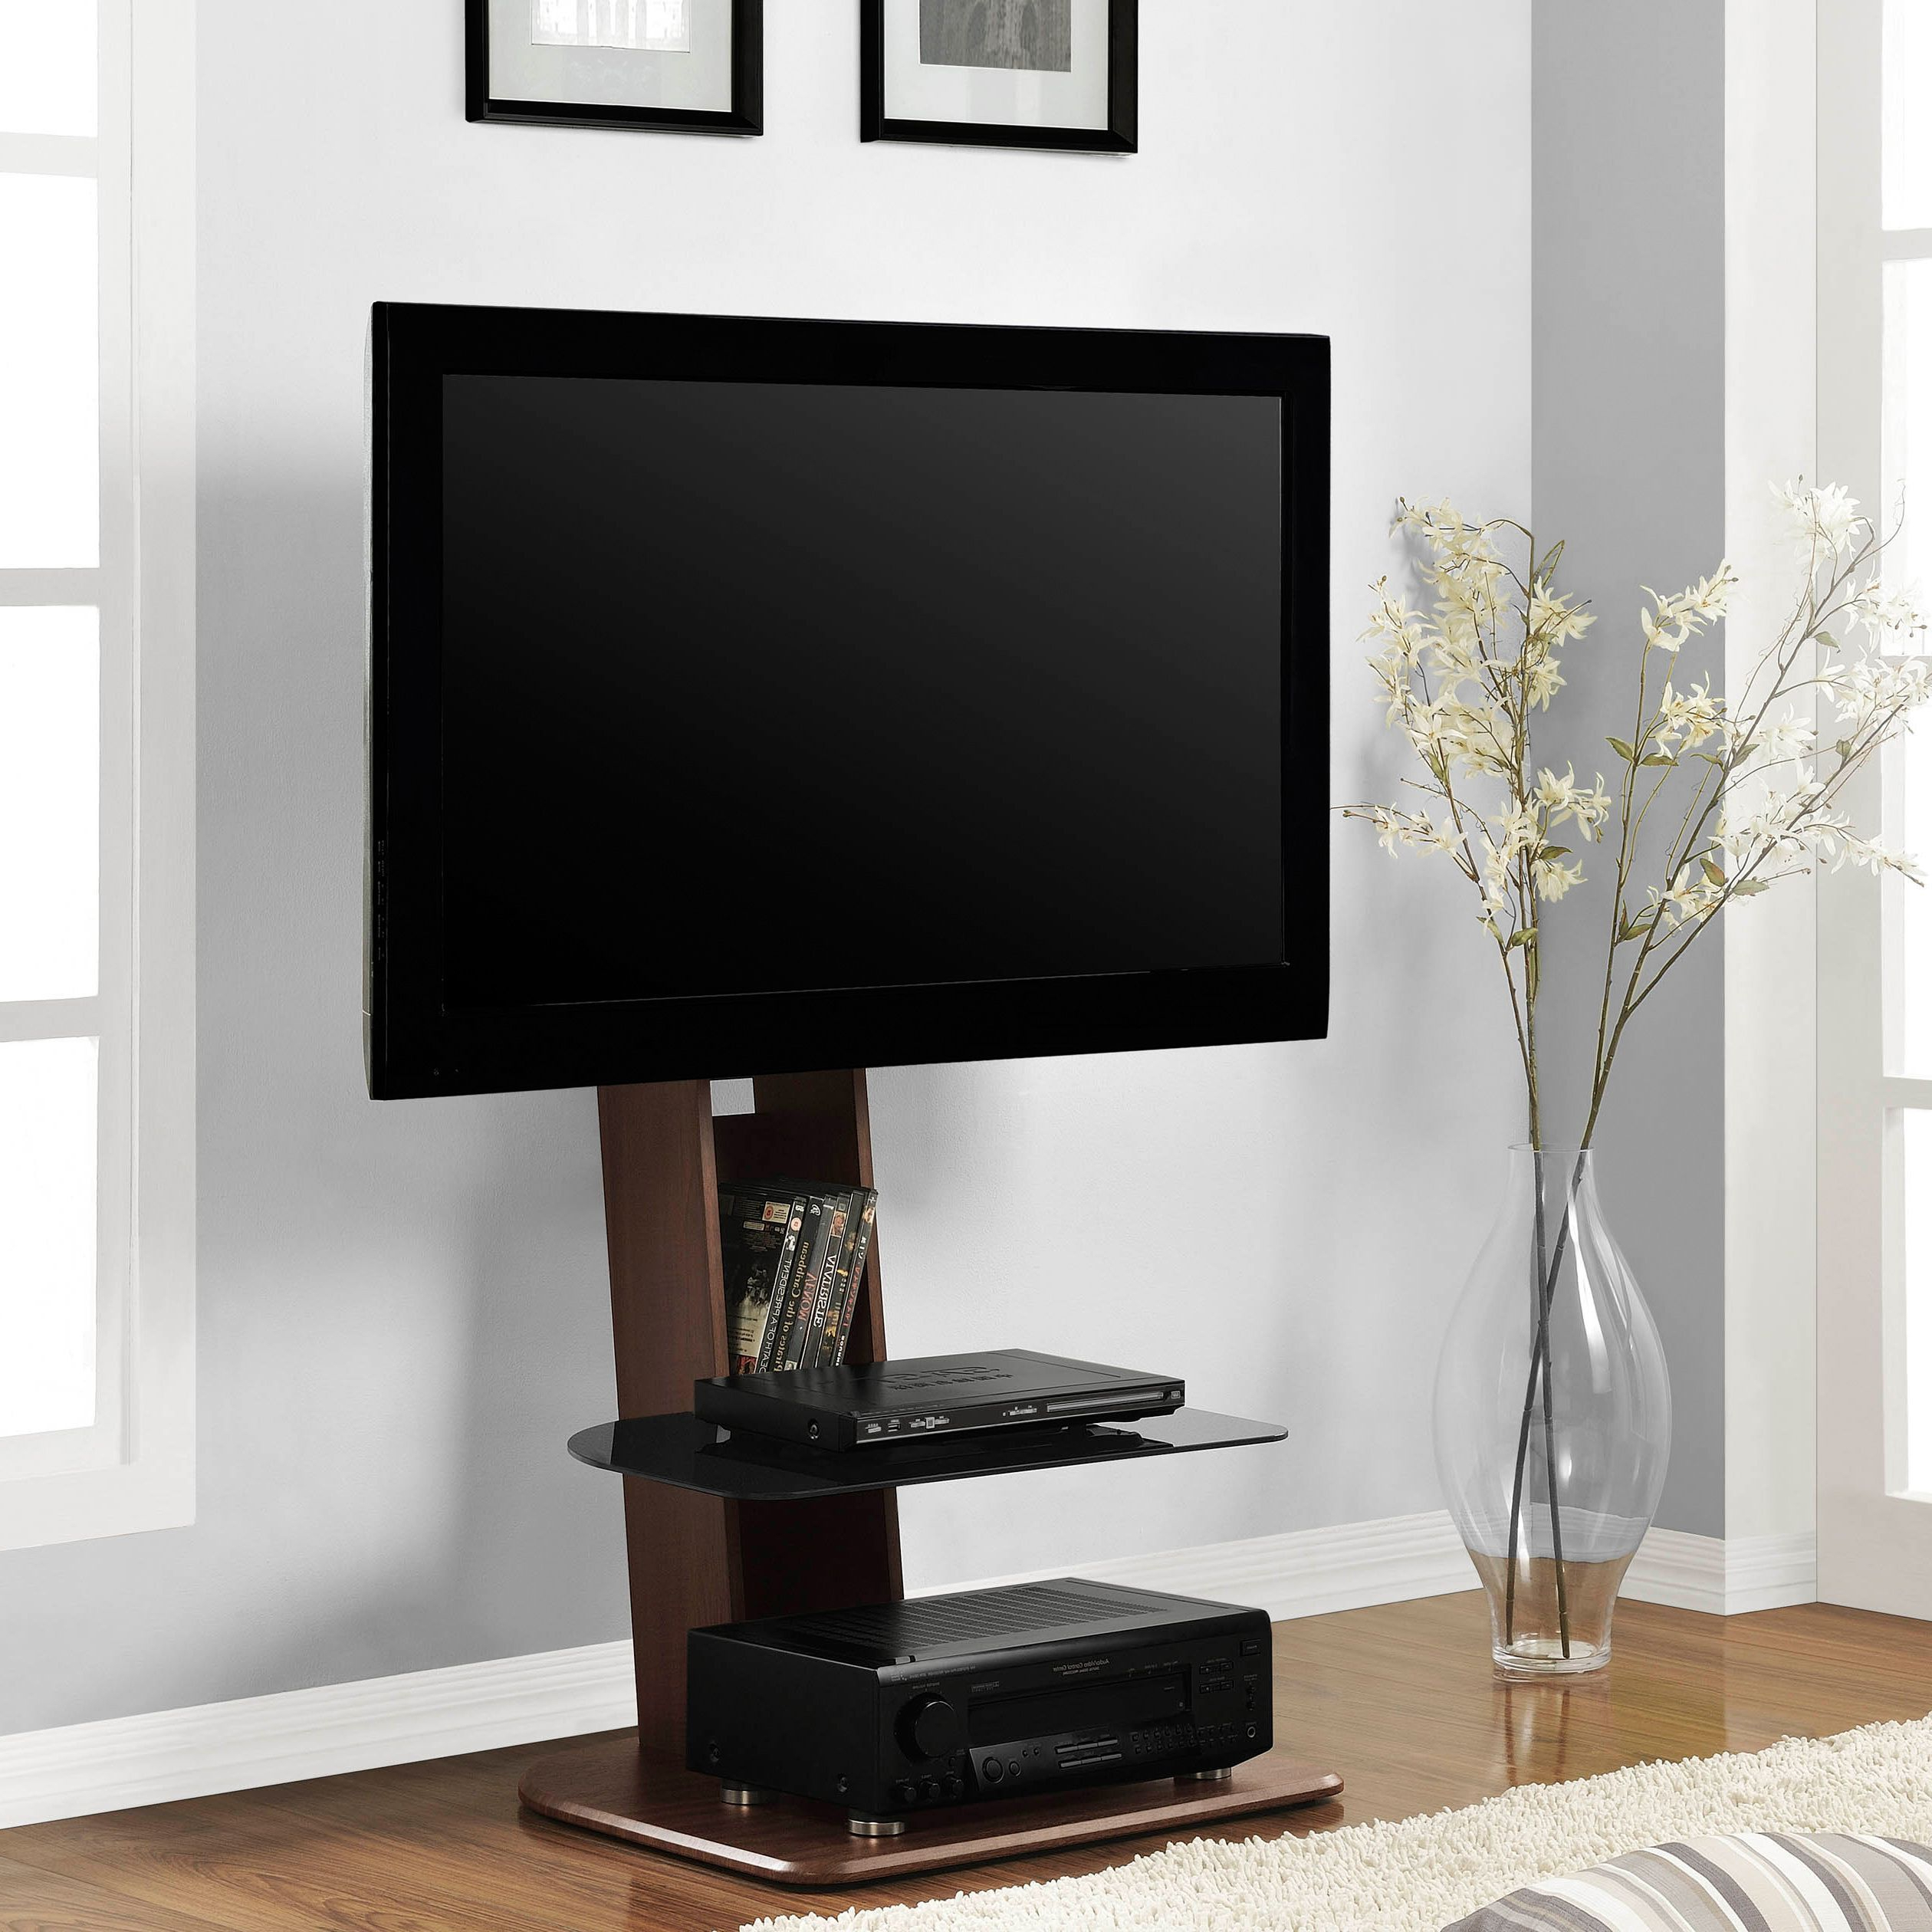 Get The Skinny On This Space Saving Tv Stand Featuring A Streamlined Within Latest Sleek Tv Stands (View 6 of 20)